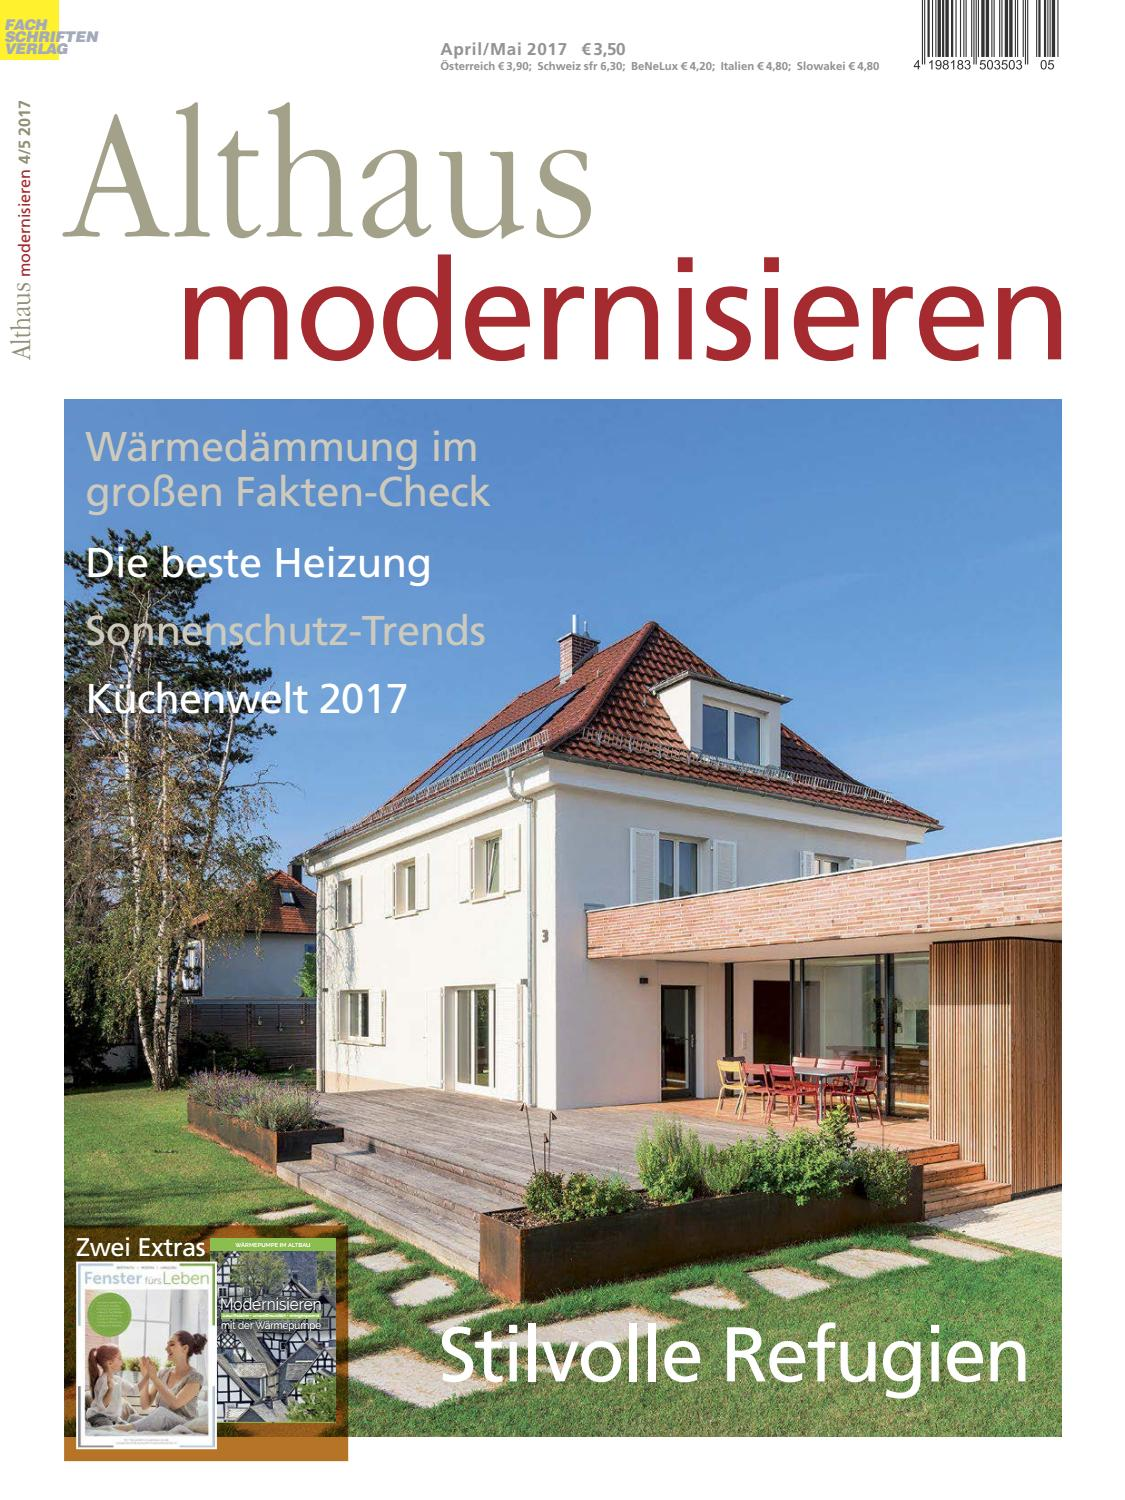 Wärmepumpe Pool Dezibel Althaus Modernisieren 4 5 2017